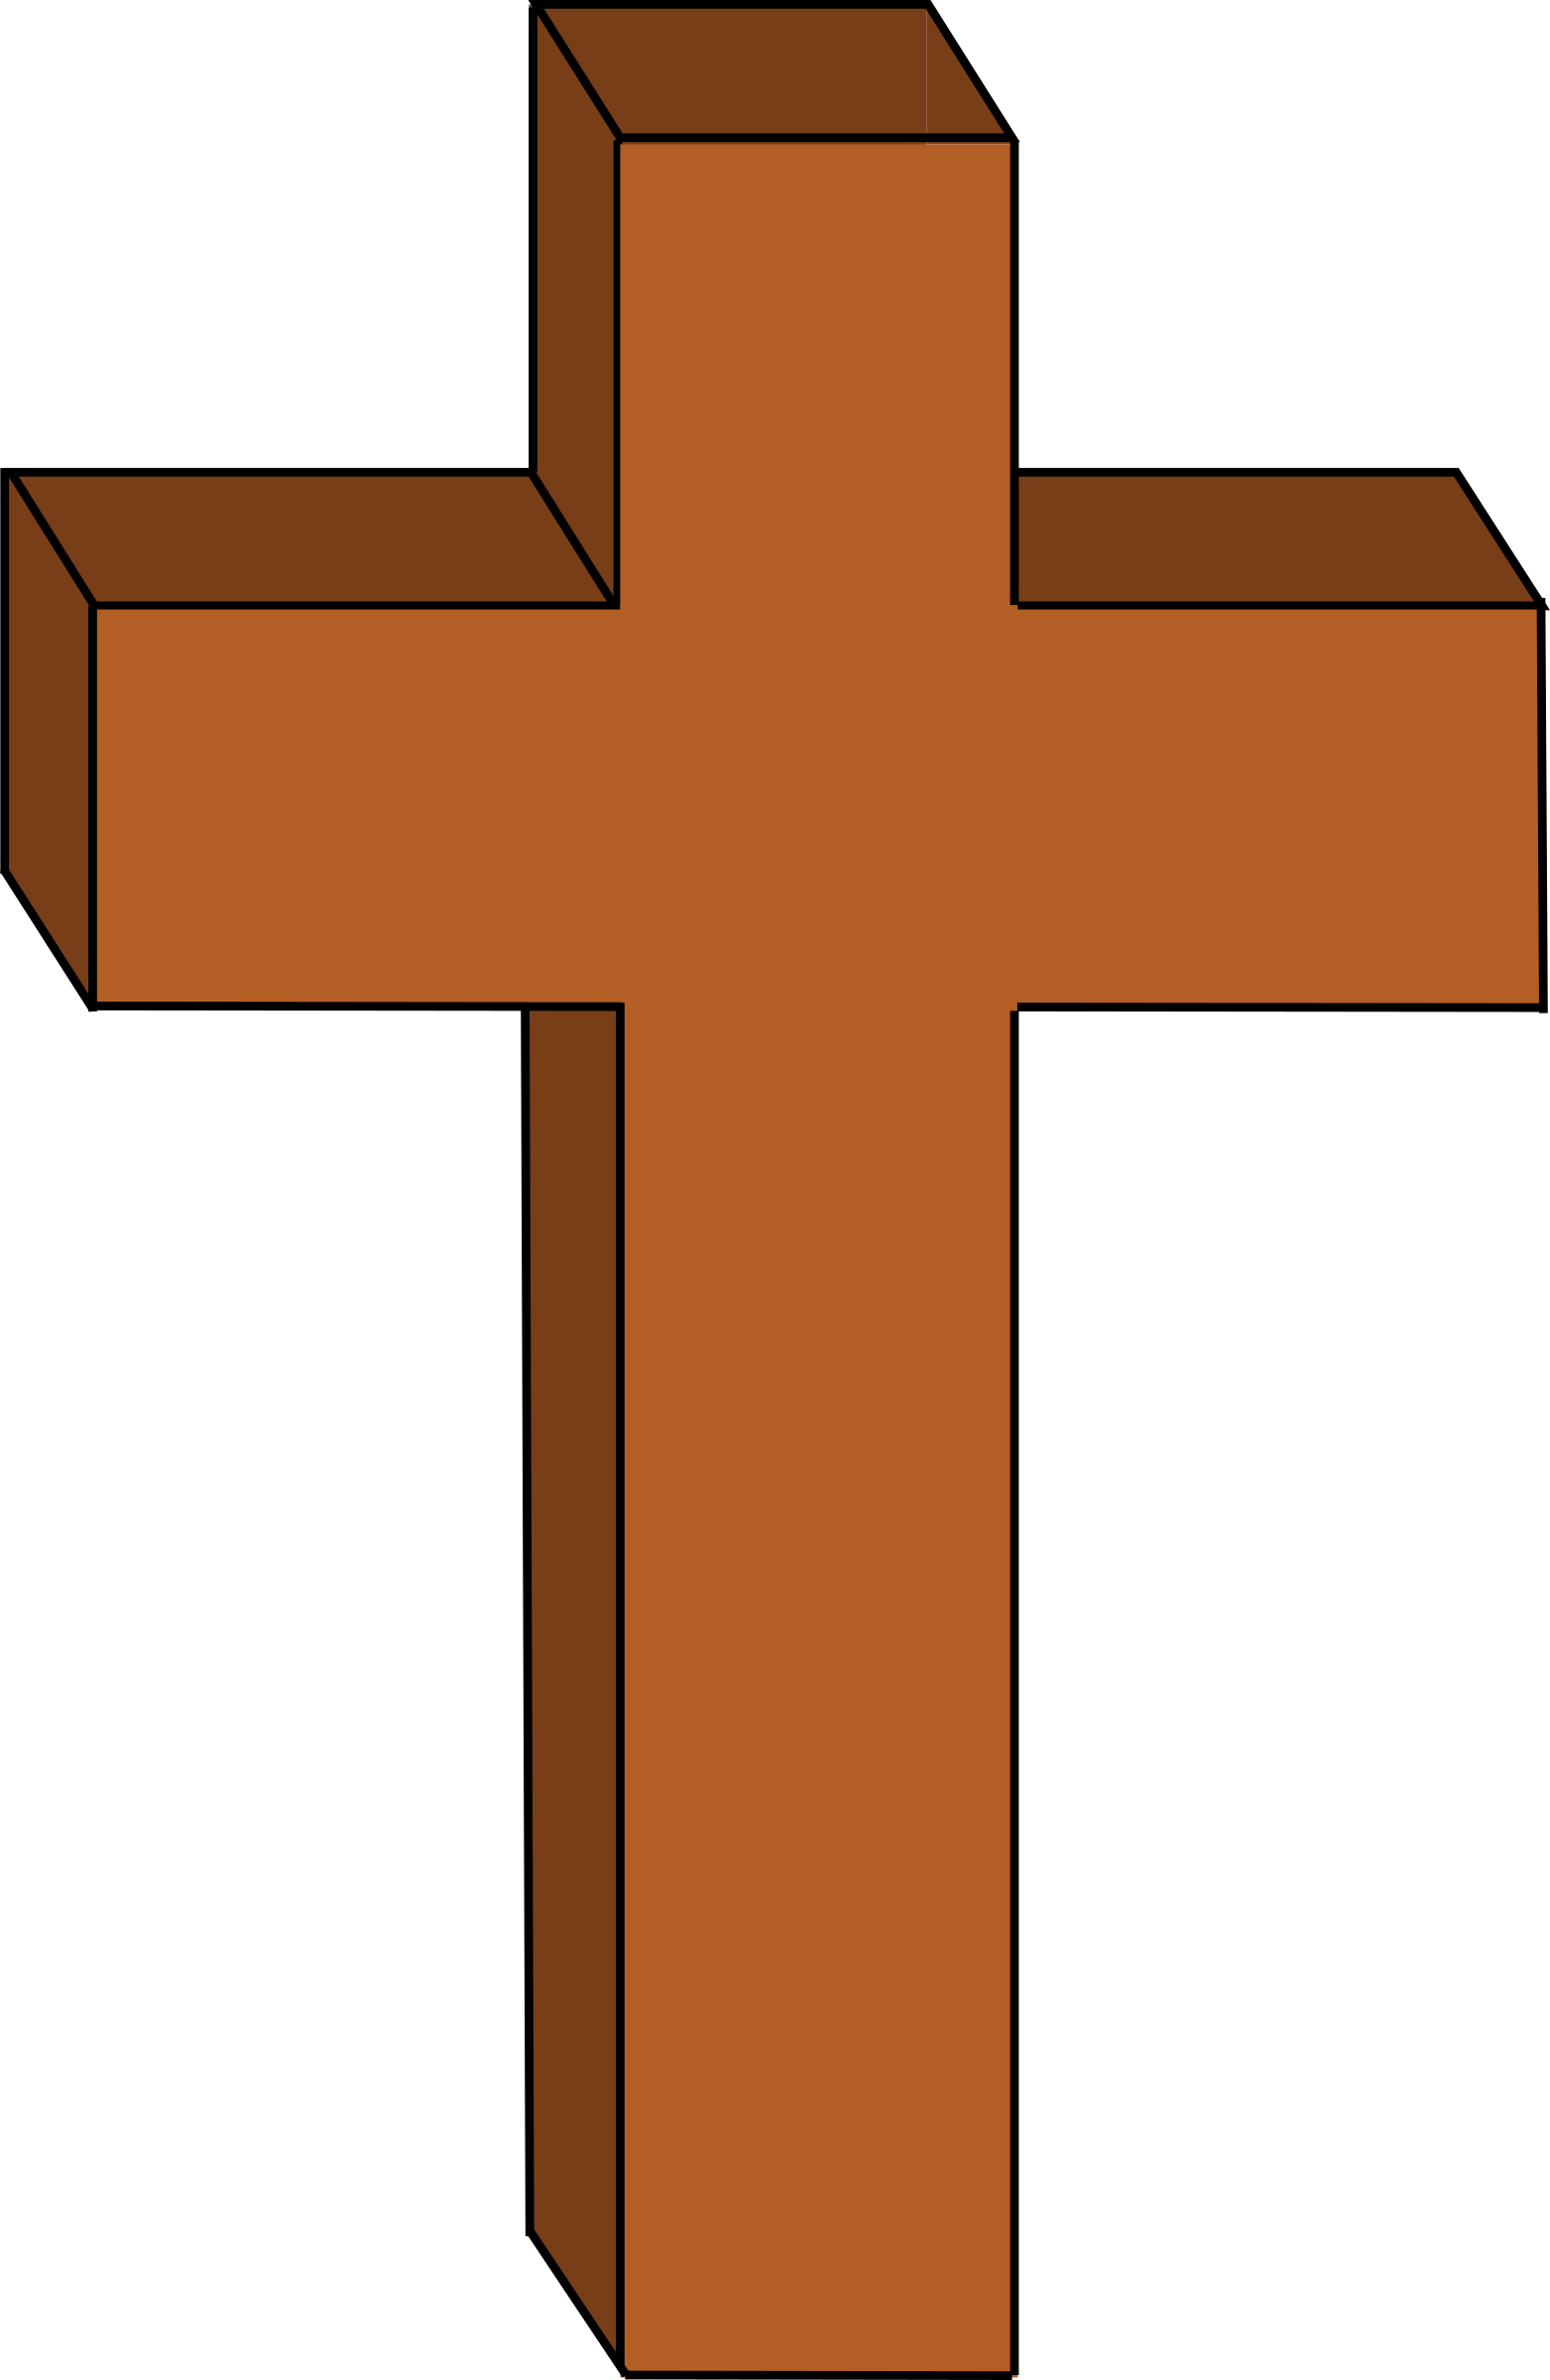 Brown cross clipart